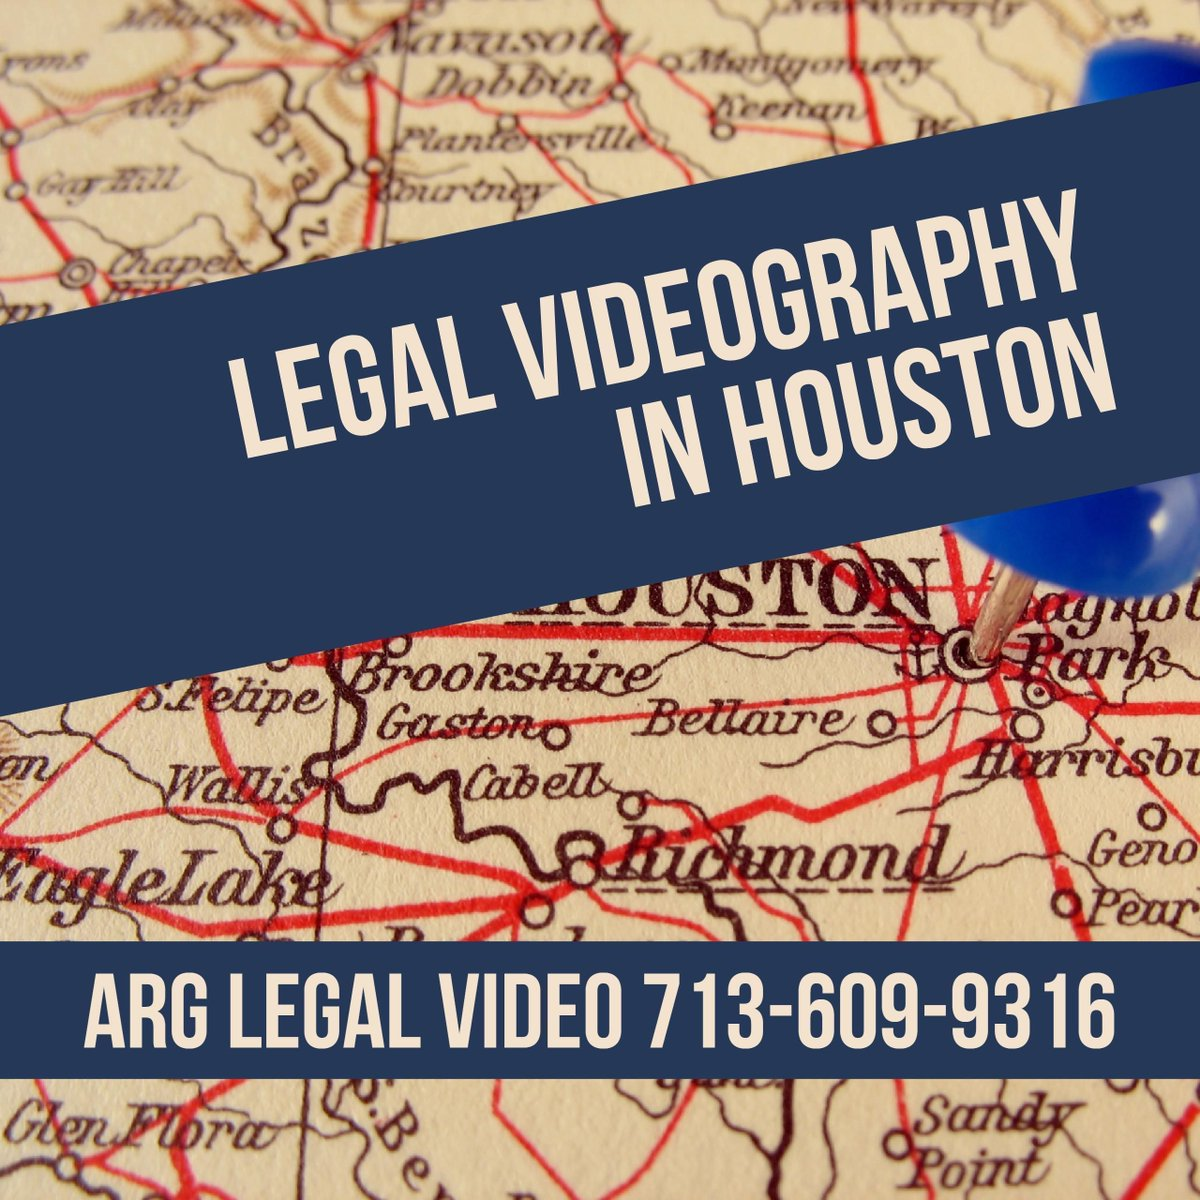 Need a Legal Videographer in Houston? Get the best. ARG Legal VIdeo, Go right to the source. 713-609-9316 #txlegal <br>http://pic.twitter.com/sAQ31LLSmP